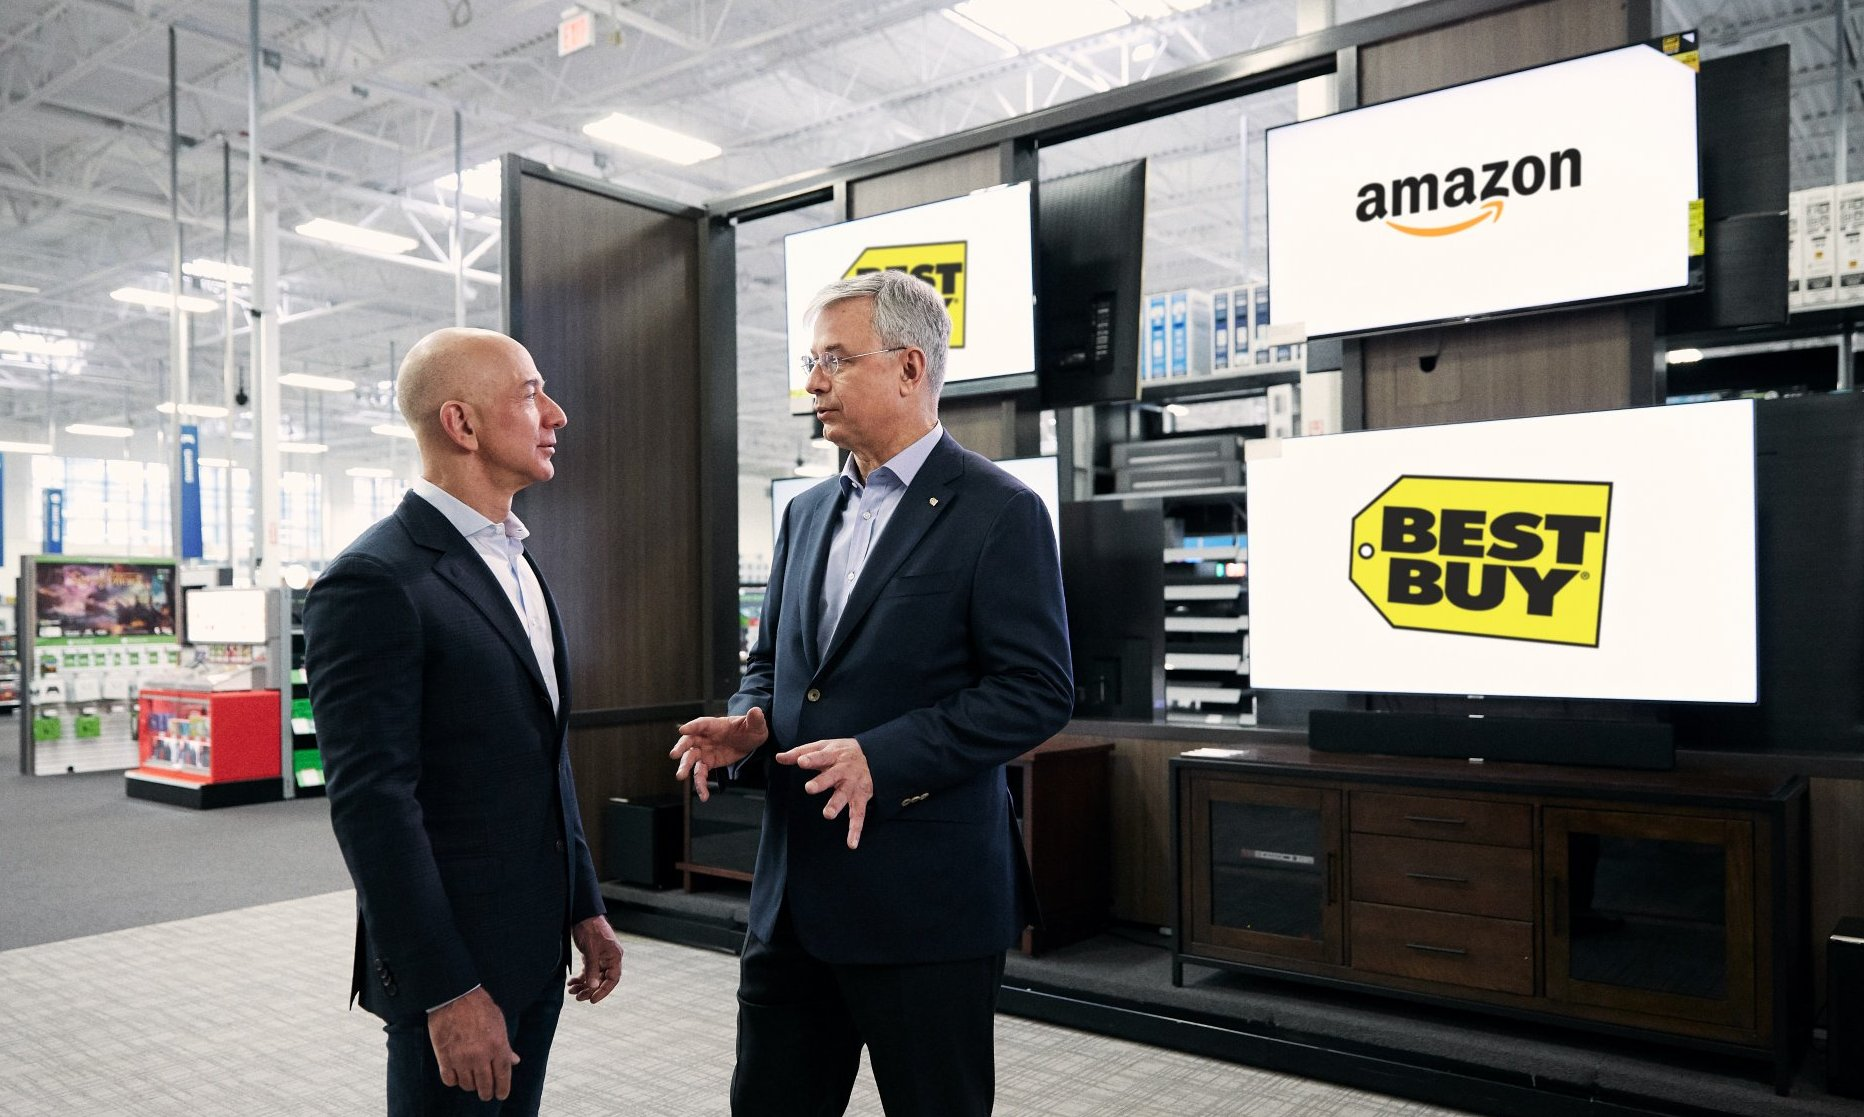 Best Buy, Amazon Announce Partnership